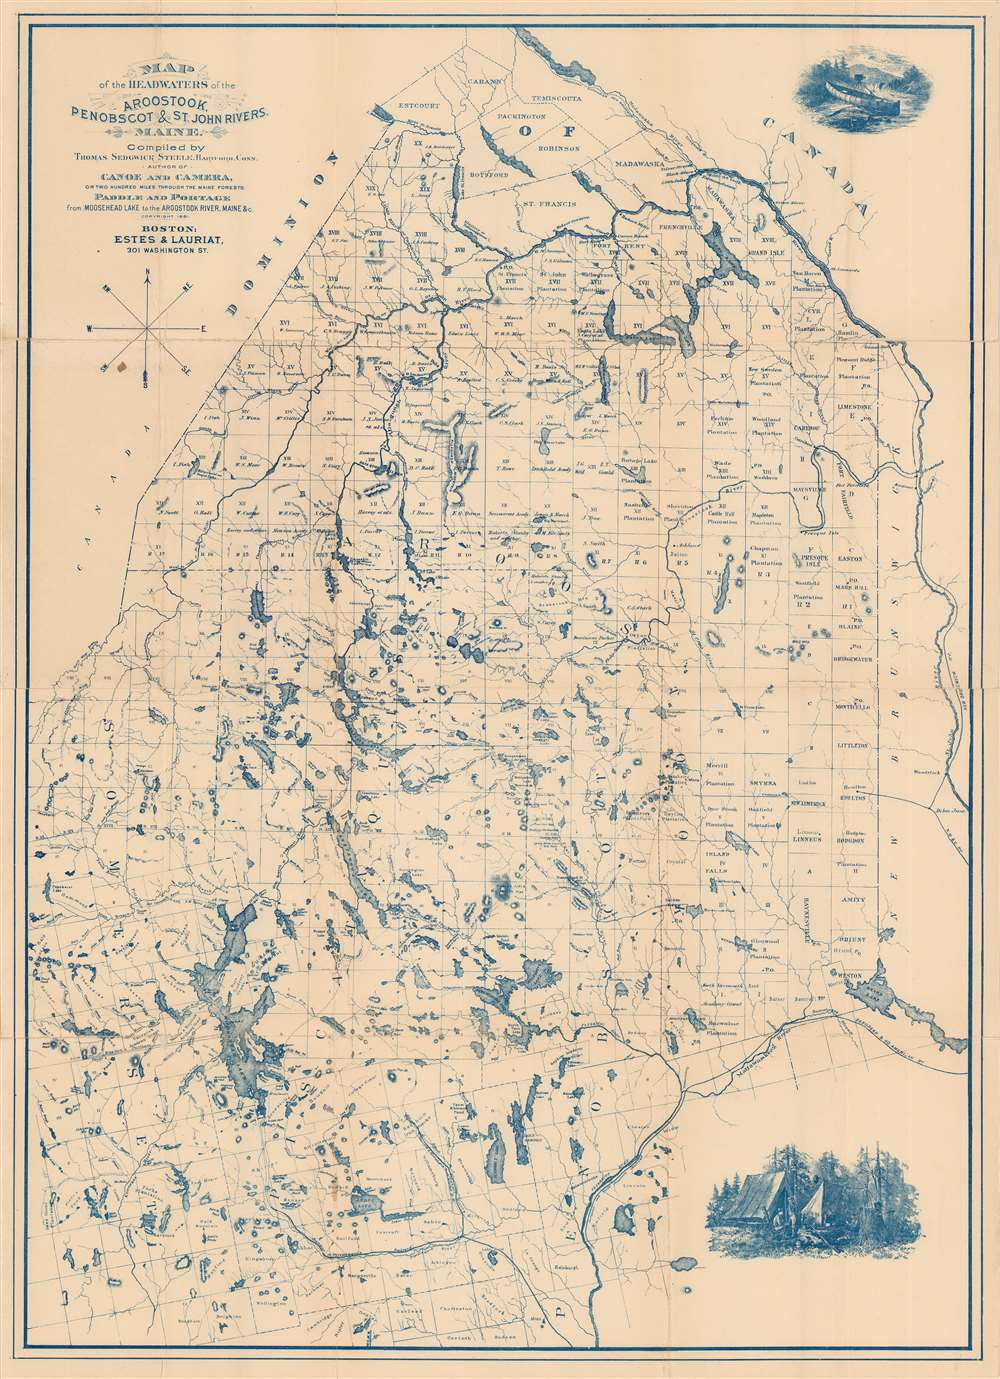 Map of the Headwaters of the Aroostook, Penobscot, and St. John Rivers, Maine. - Main View